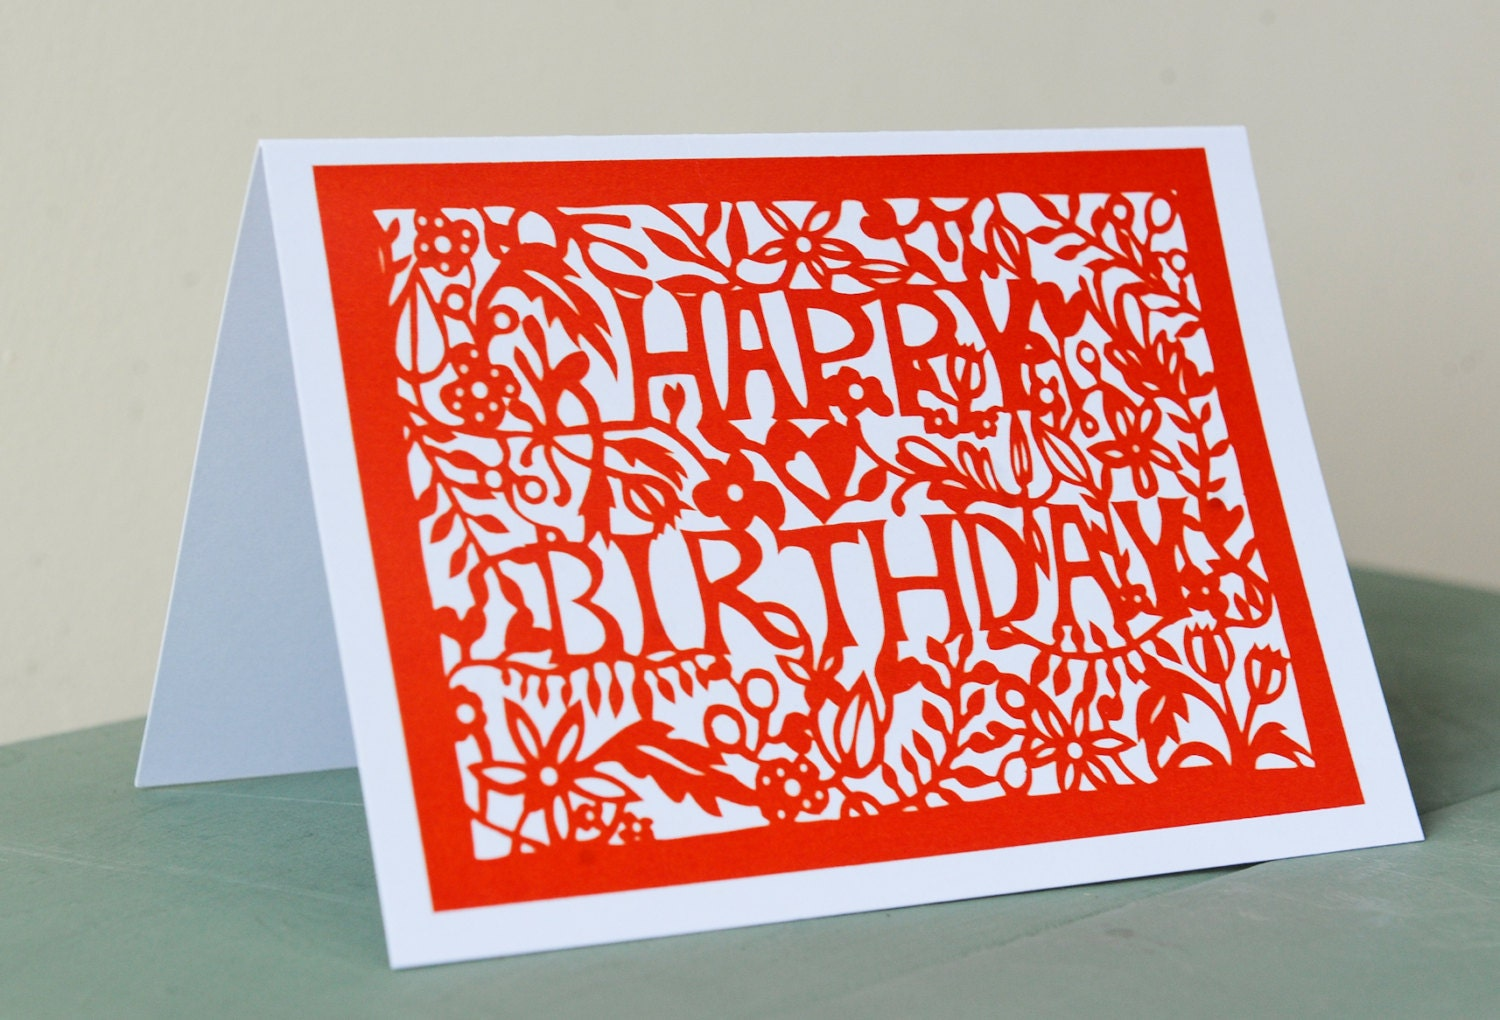 Happy Birthday greetings card, printed from an original papercut design made by me at Seren Papercuts.